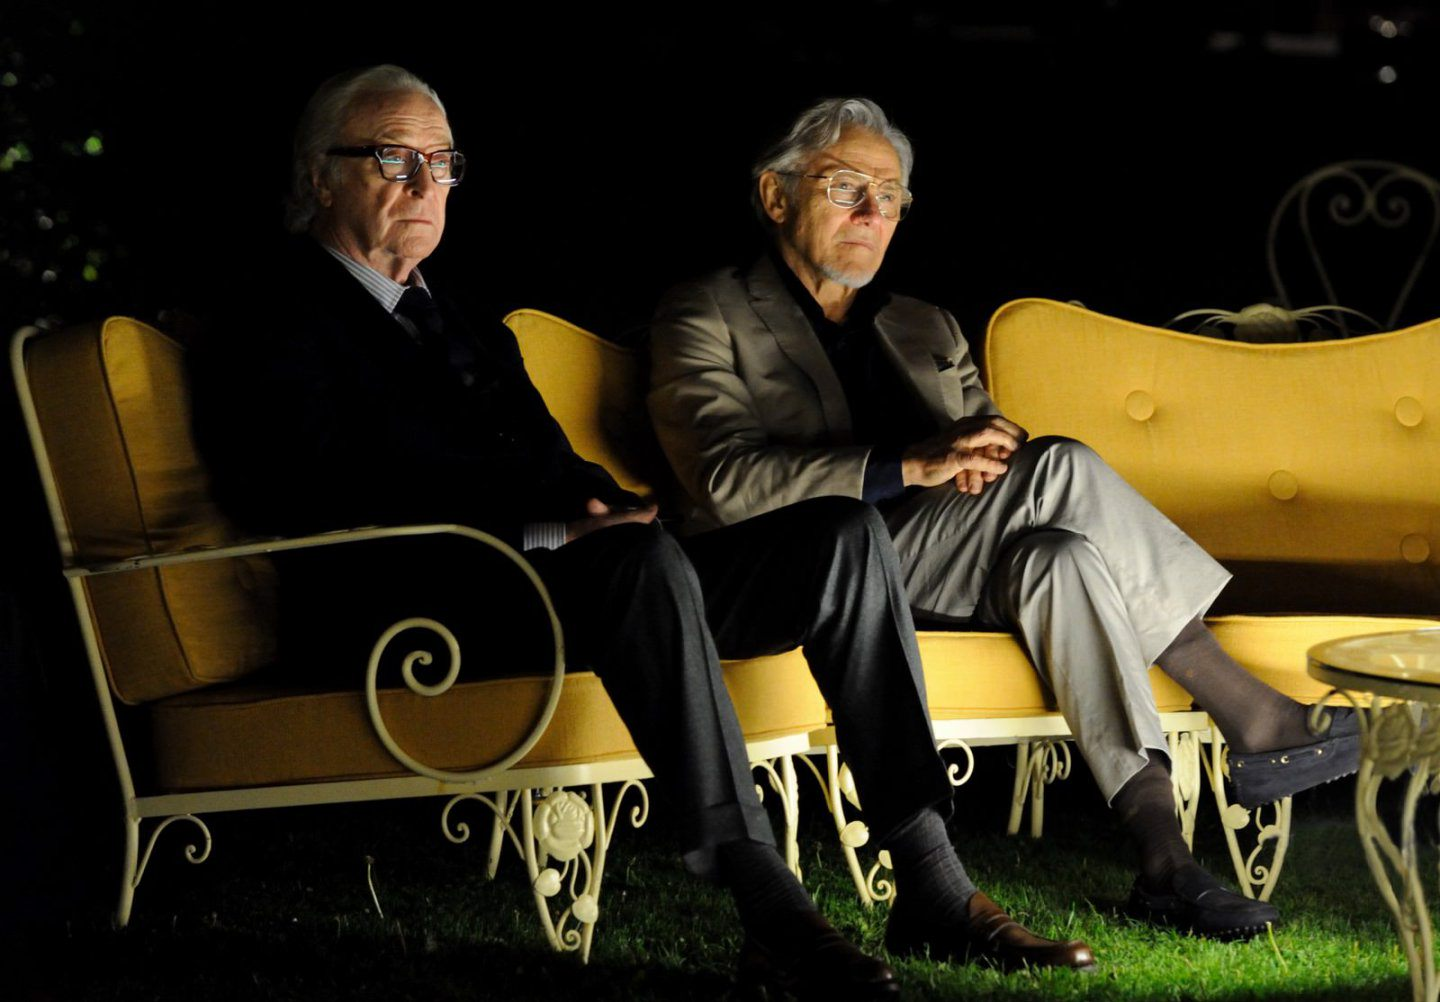 Youth-La_juventud-Sorrentino